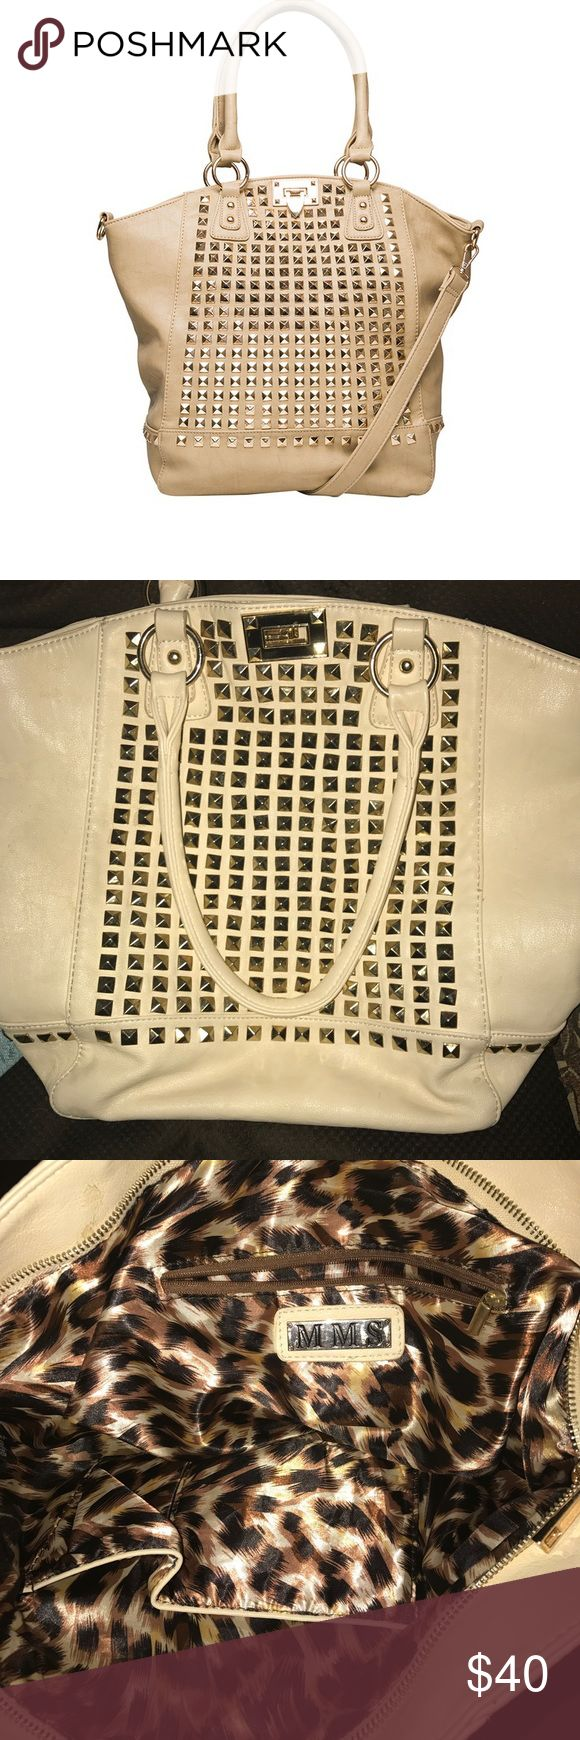 MMS gold studded tote Tan with gold studs. Lots of pockets. Purchased from Buckle. Long strap not included. Hardly used, in great condition! Buckle Bags Totes